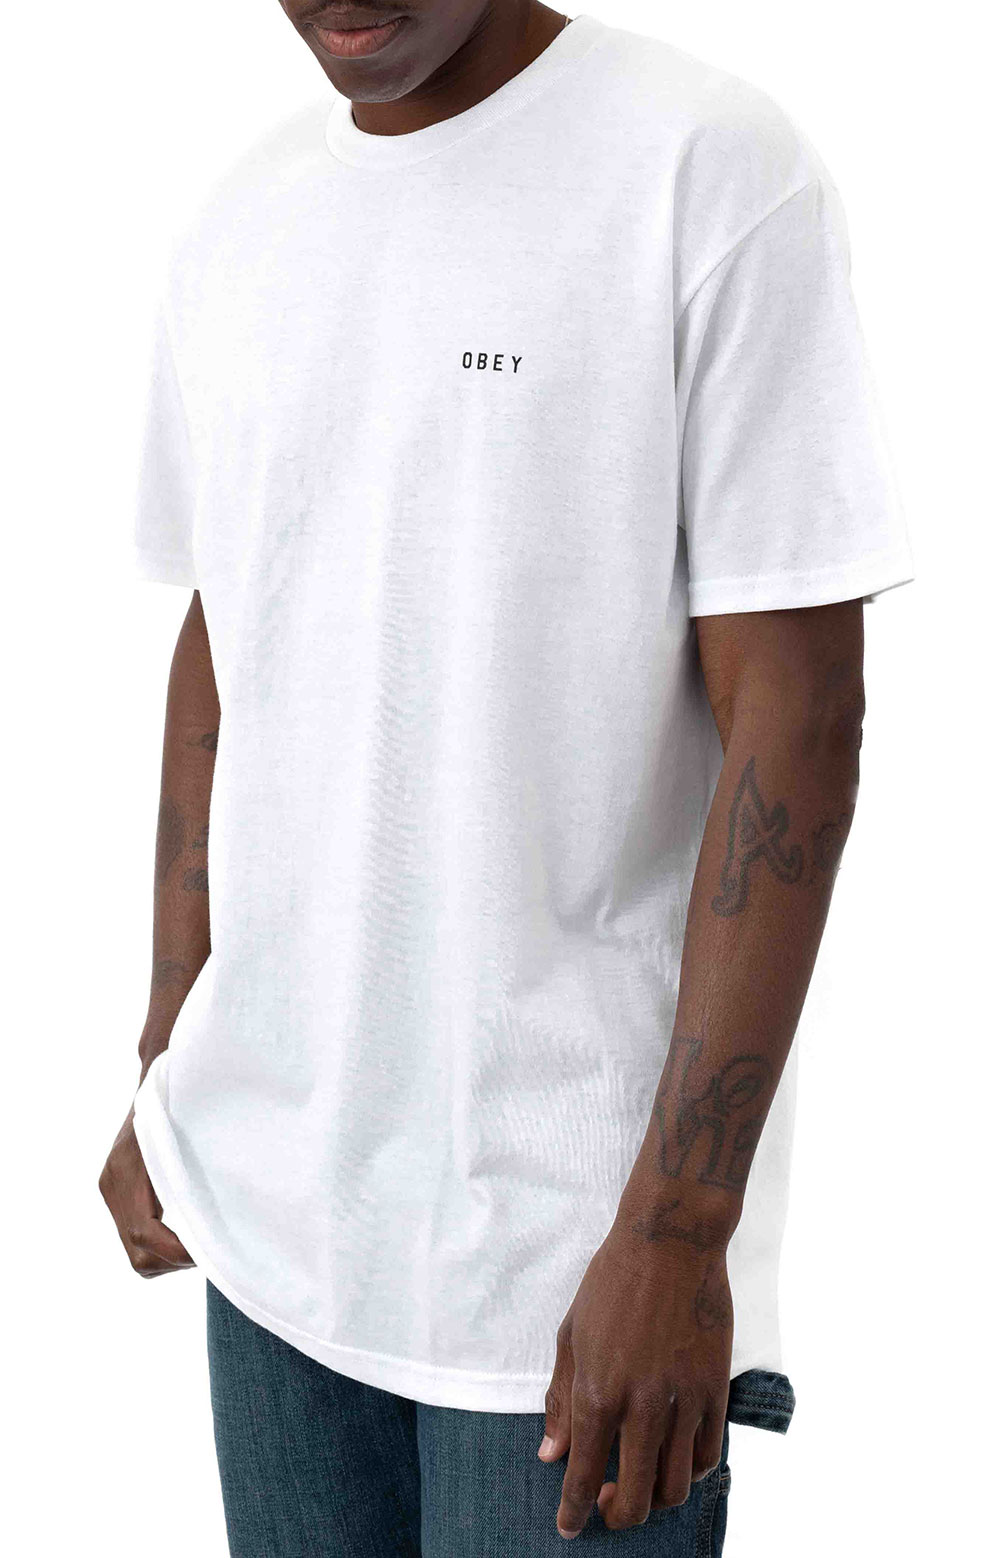 Obey Dissent & Chaos Tiger T-Shirt - White